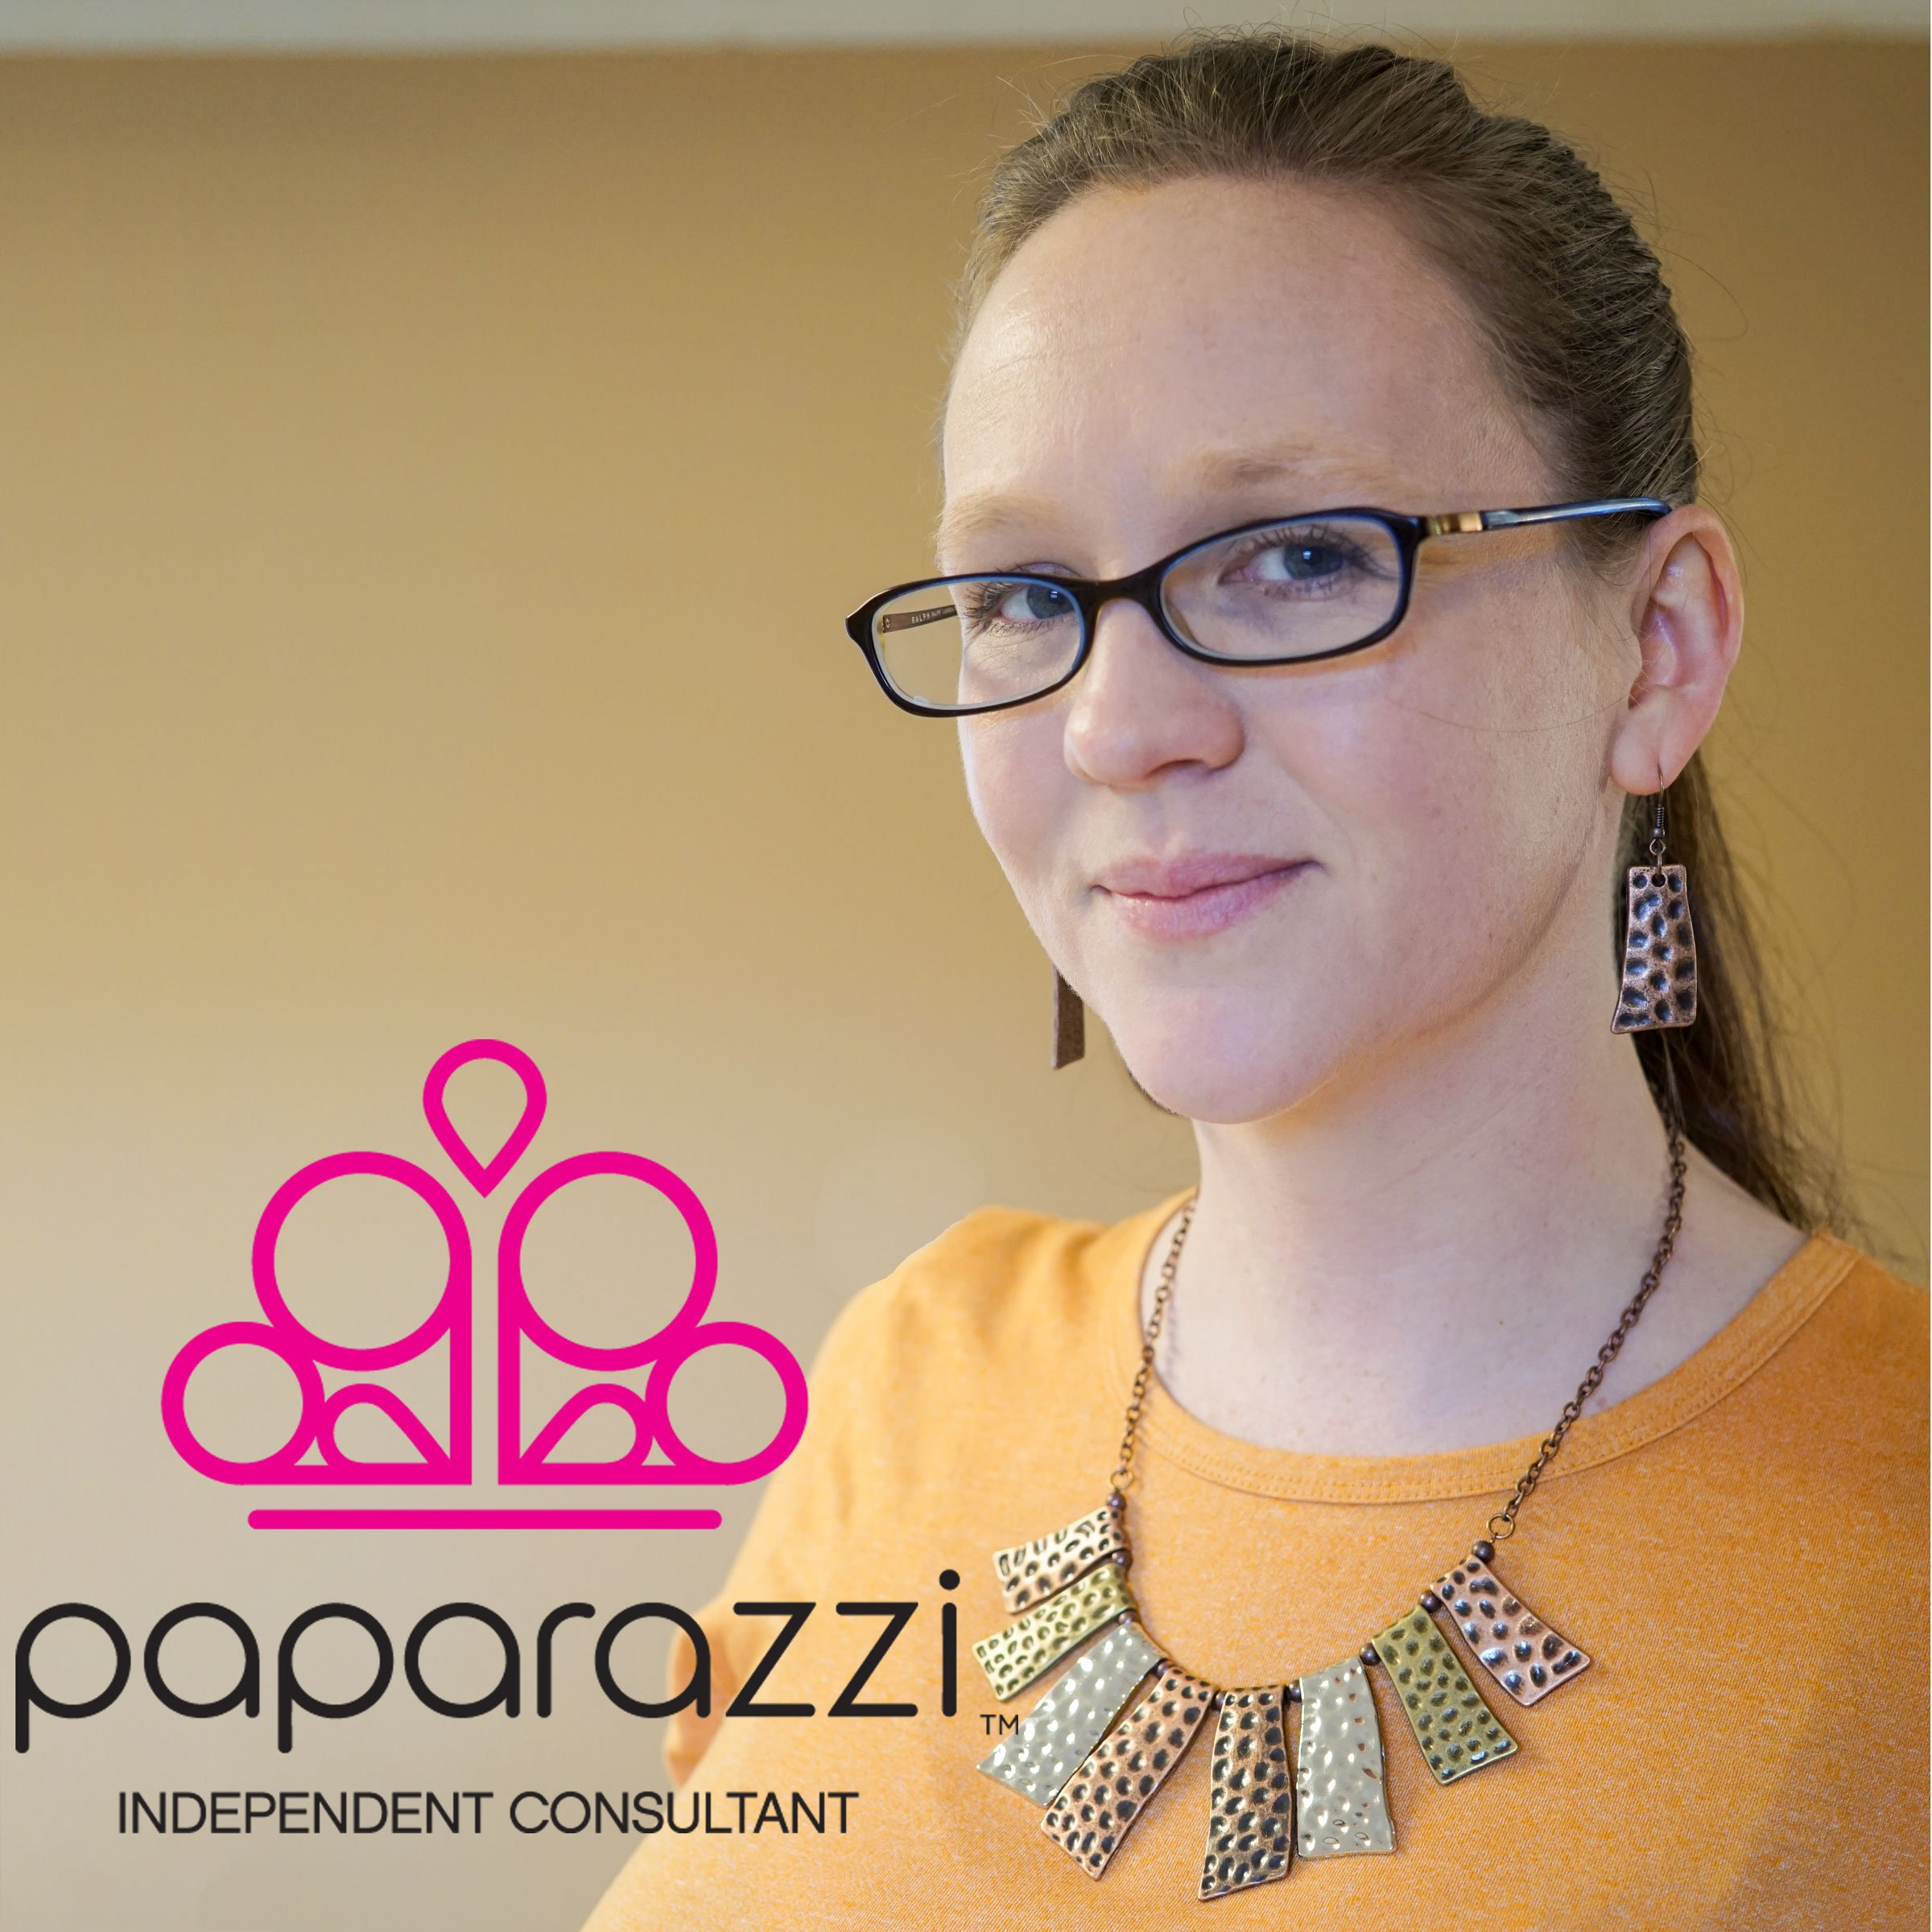 Paparazzi Accessories Independent Consultant| Mama's got Bling | Fashion Accessories |